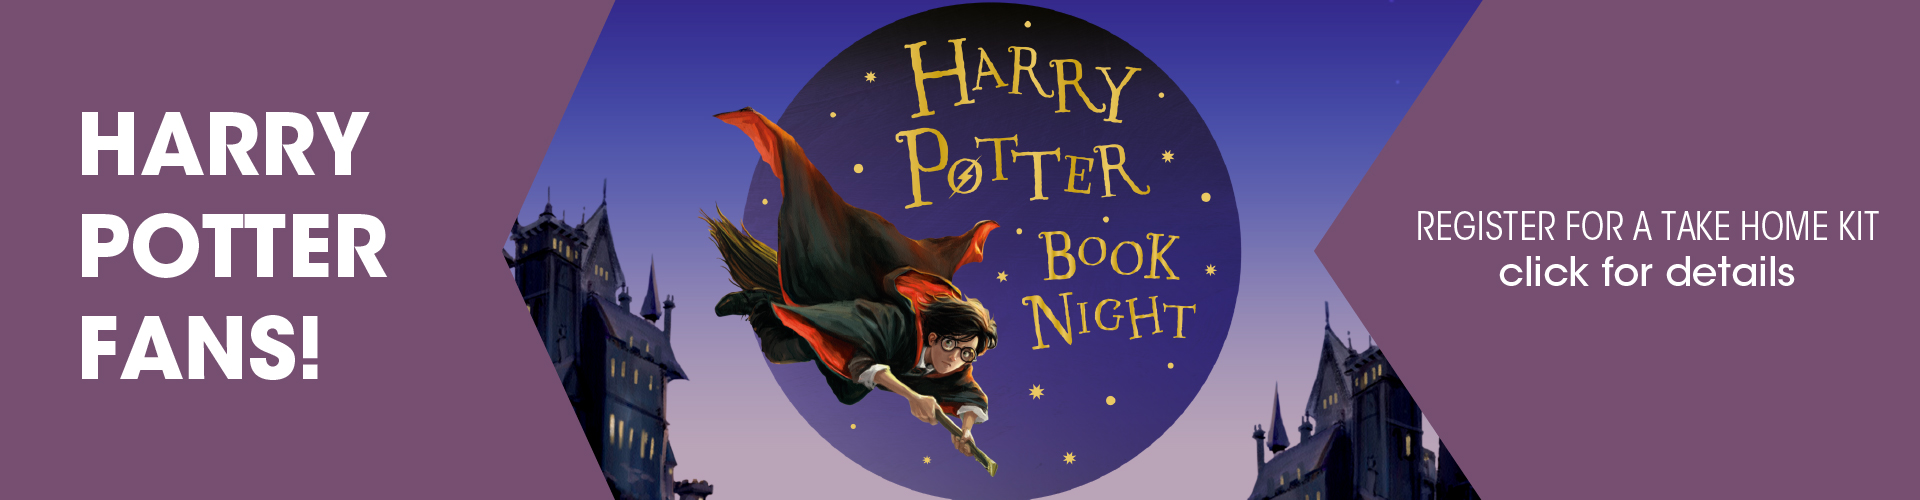 harry-potter-book-night